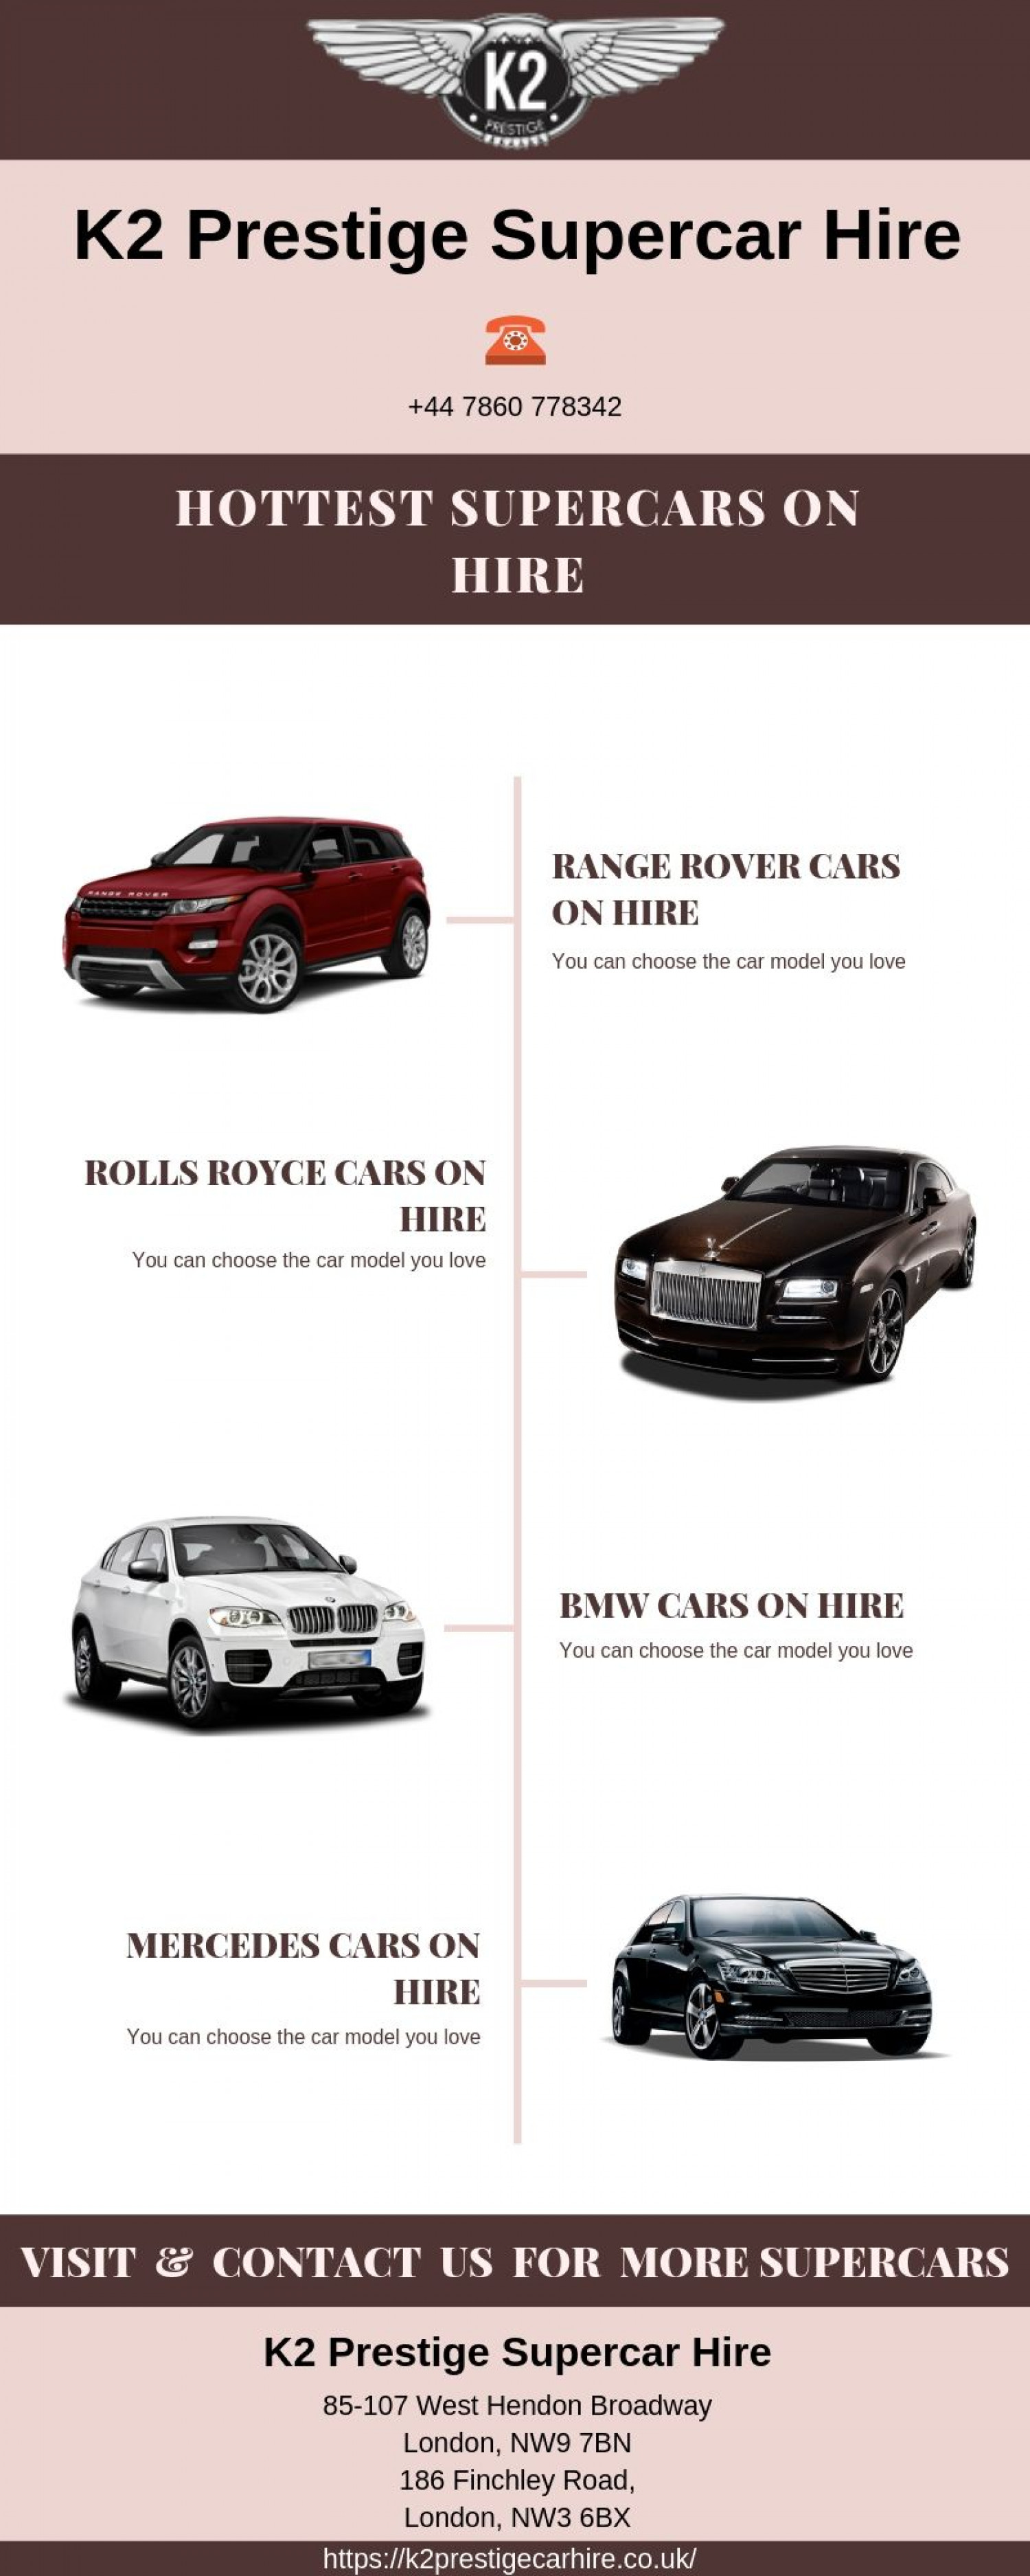 Hottest Supercars on Hire from K2 Prestige in London Infographic